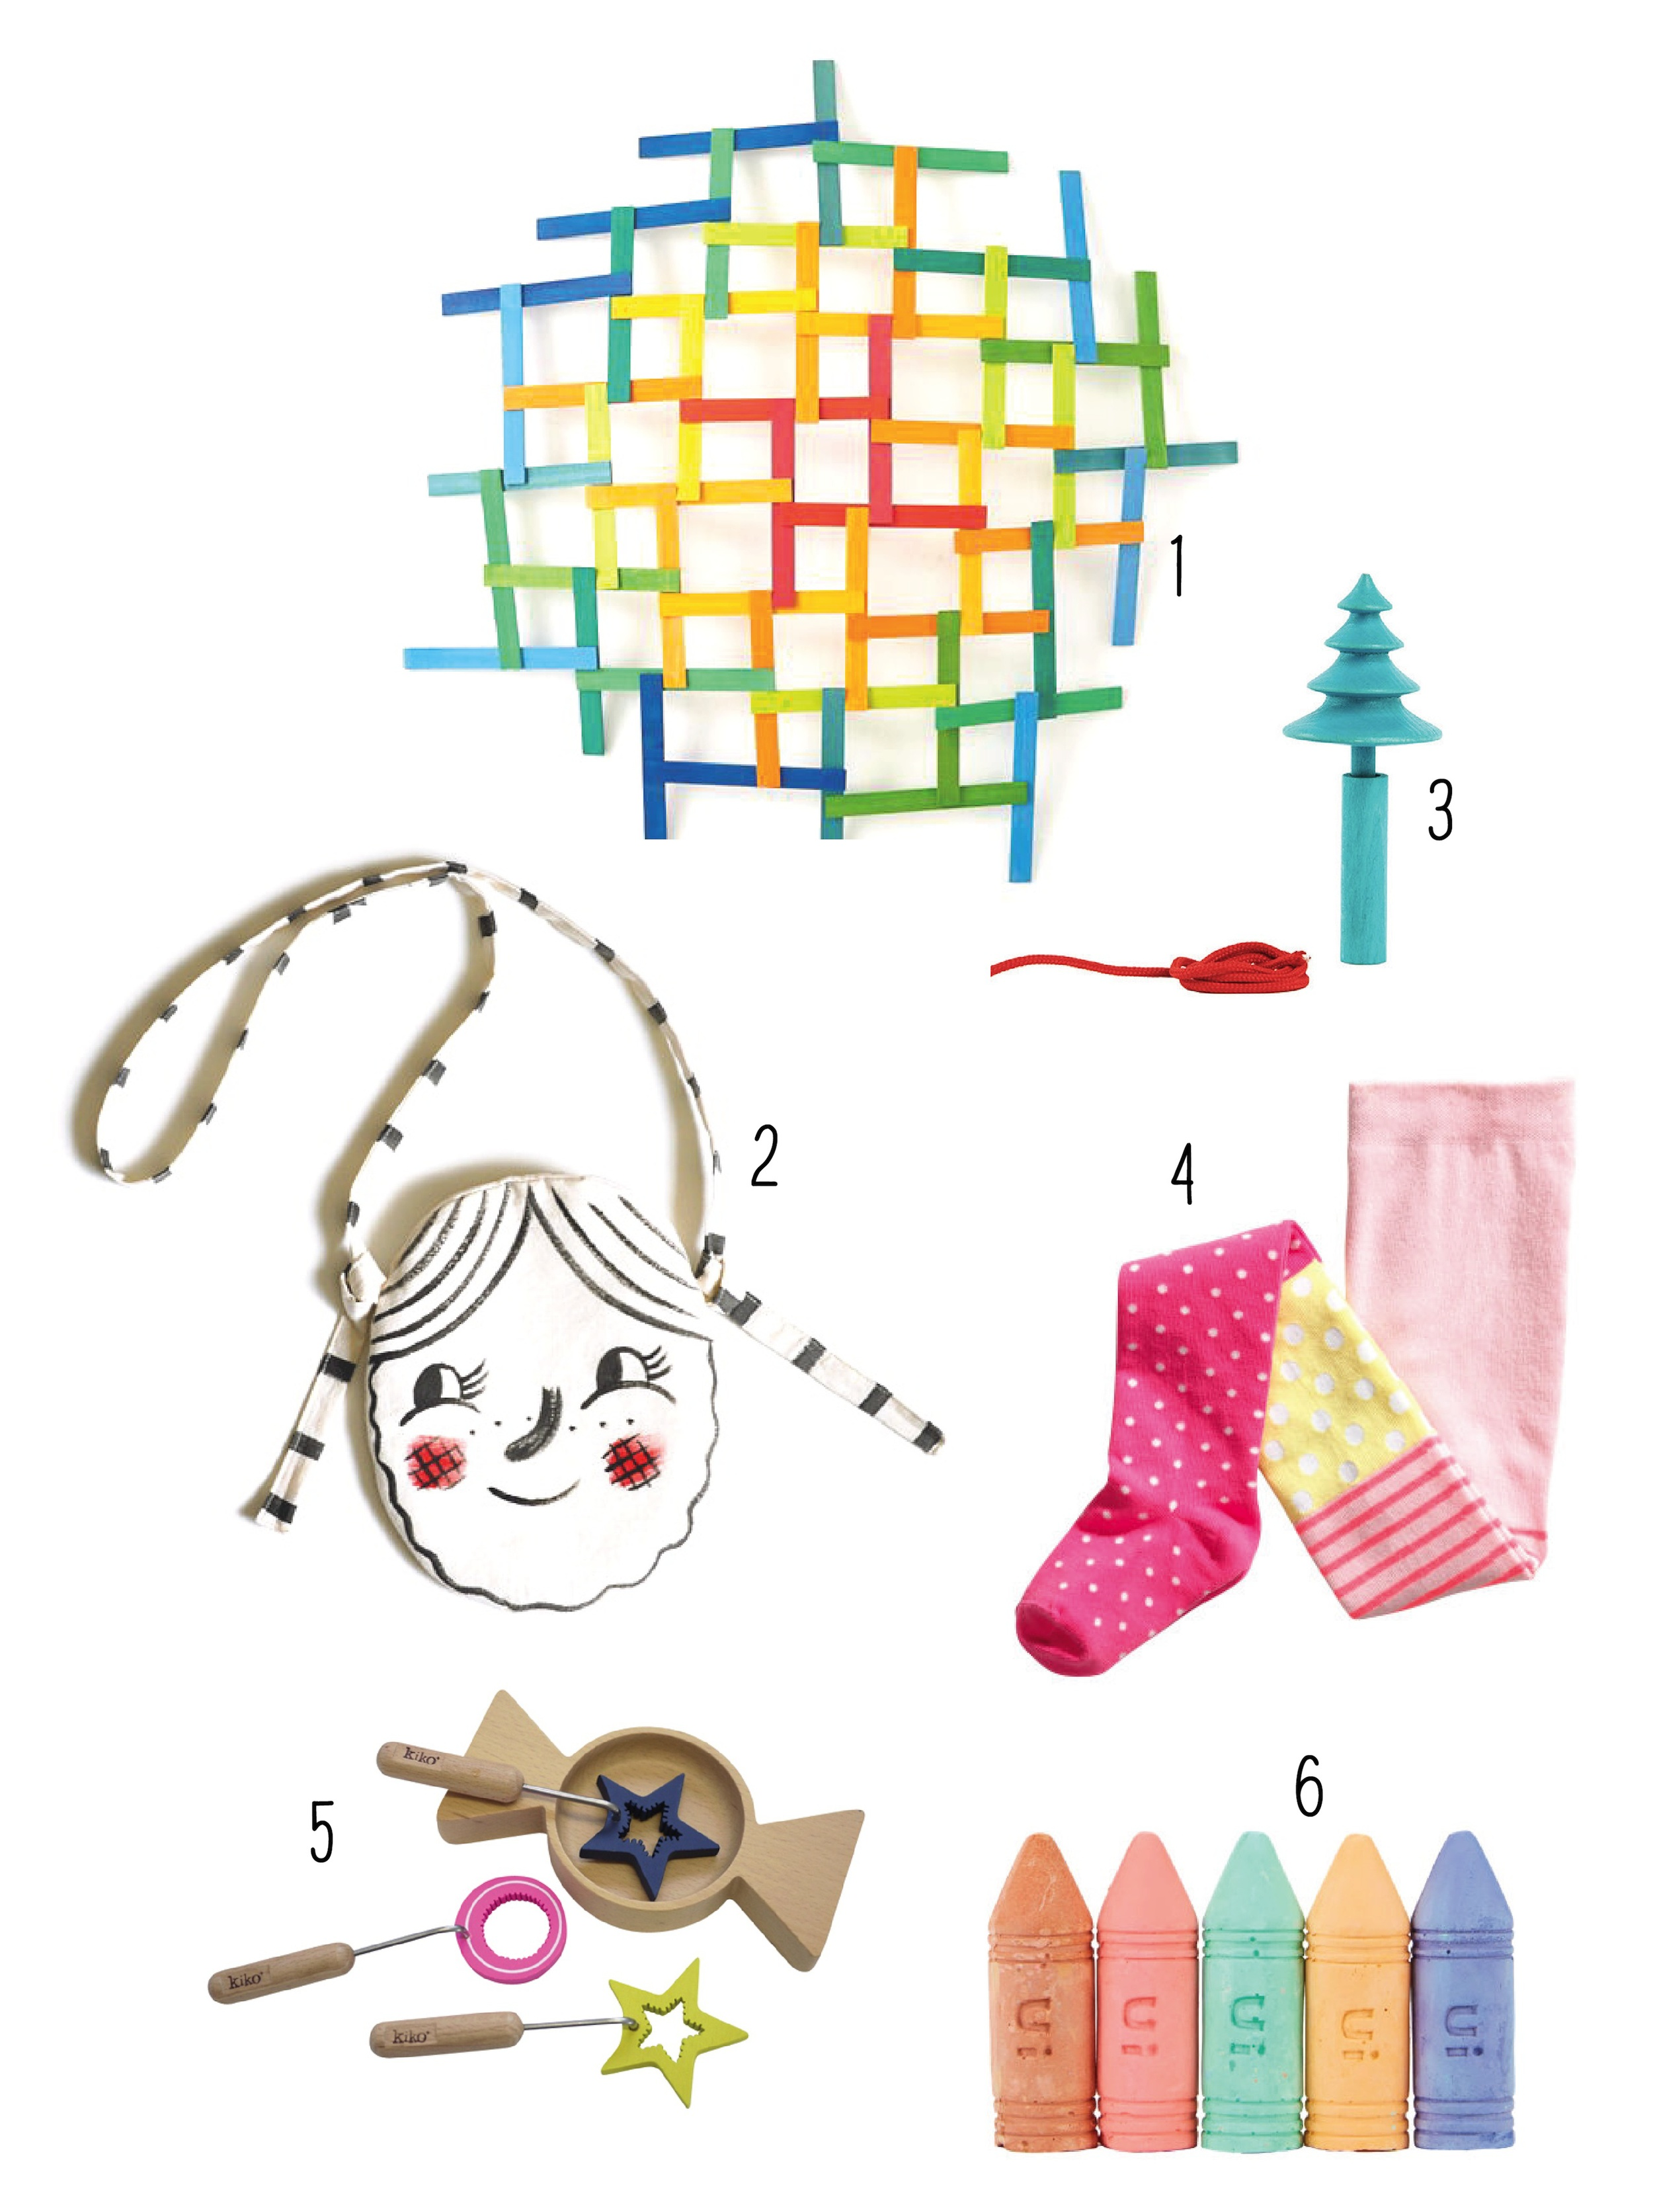 Stocking stuffer ideas for girls!   And We Play